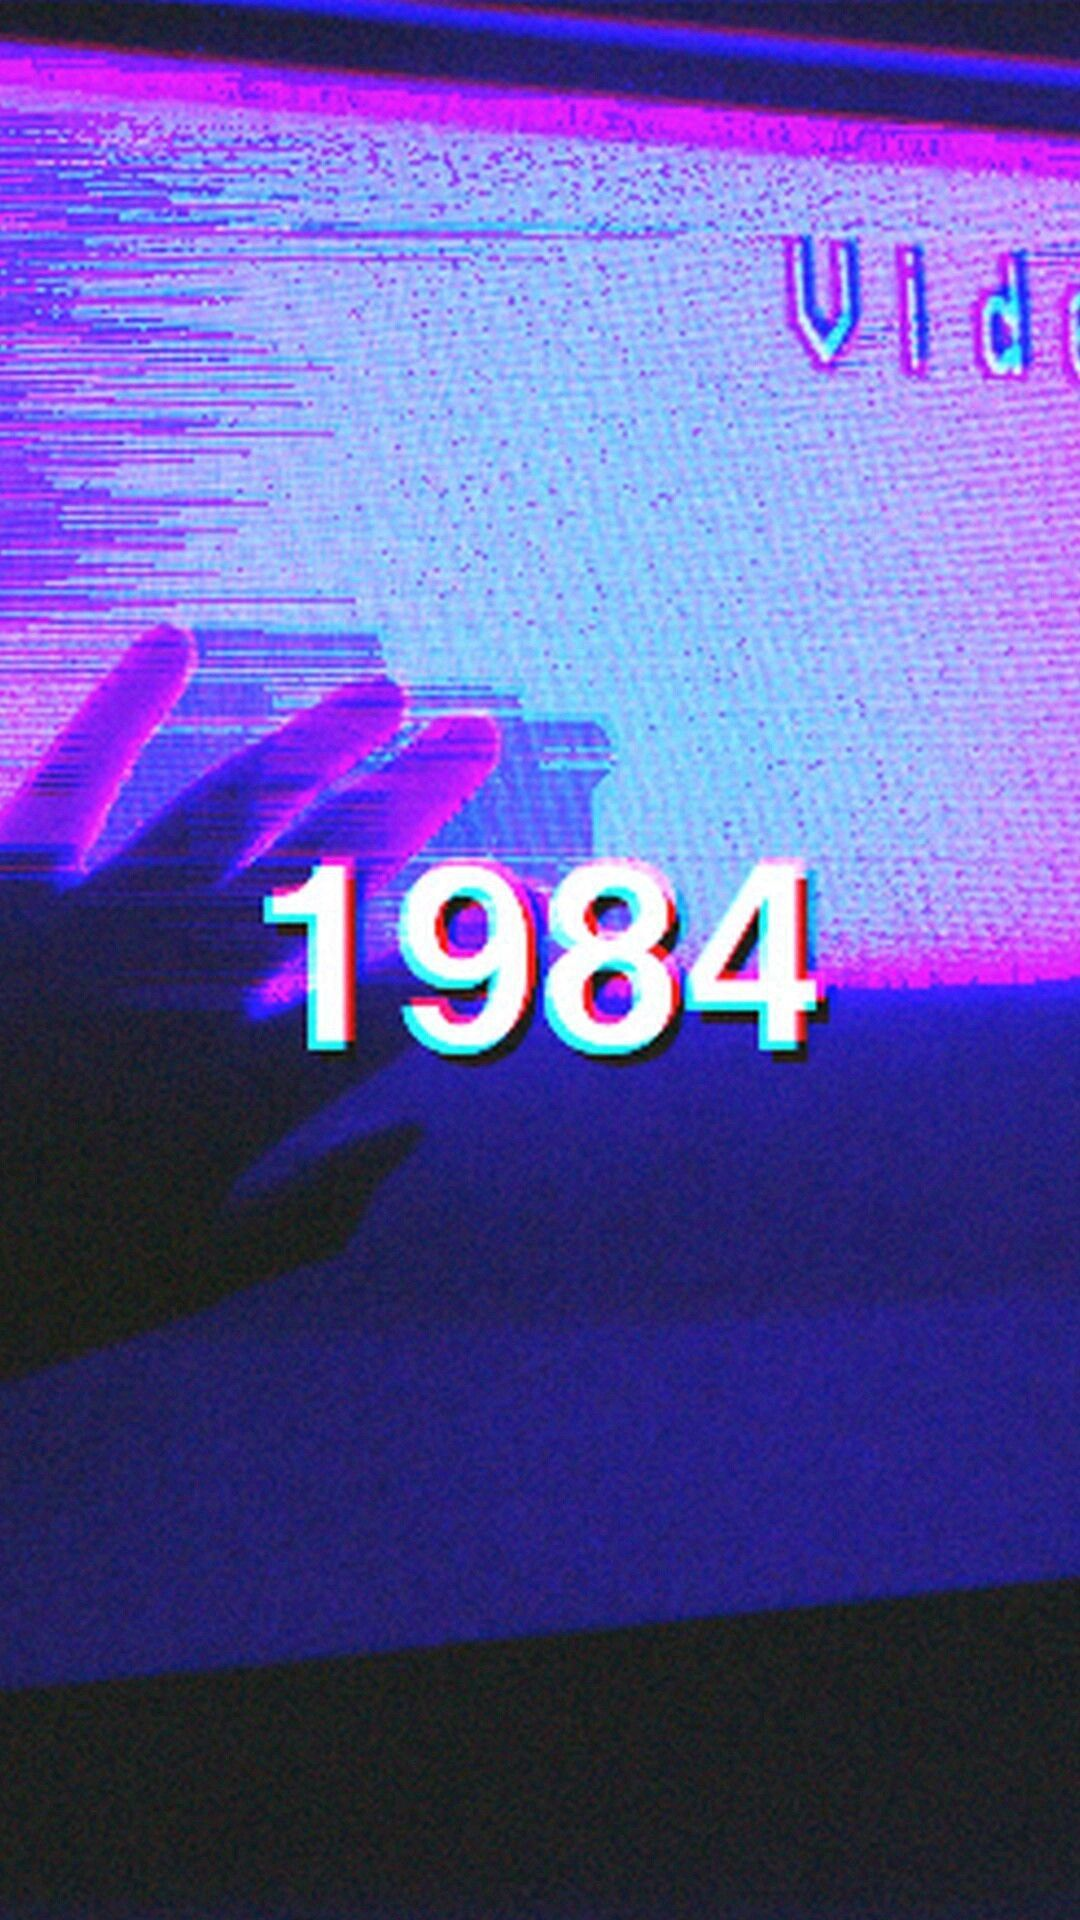 Vhs Aesthetic Wallpapers Top Free Vhs Aesthetic Backgrounds Wallpaperaccess